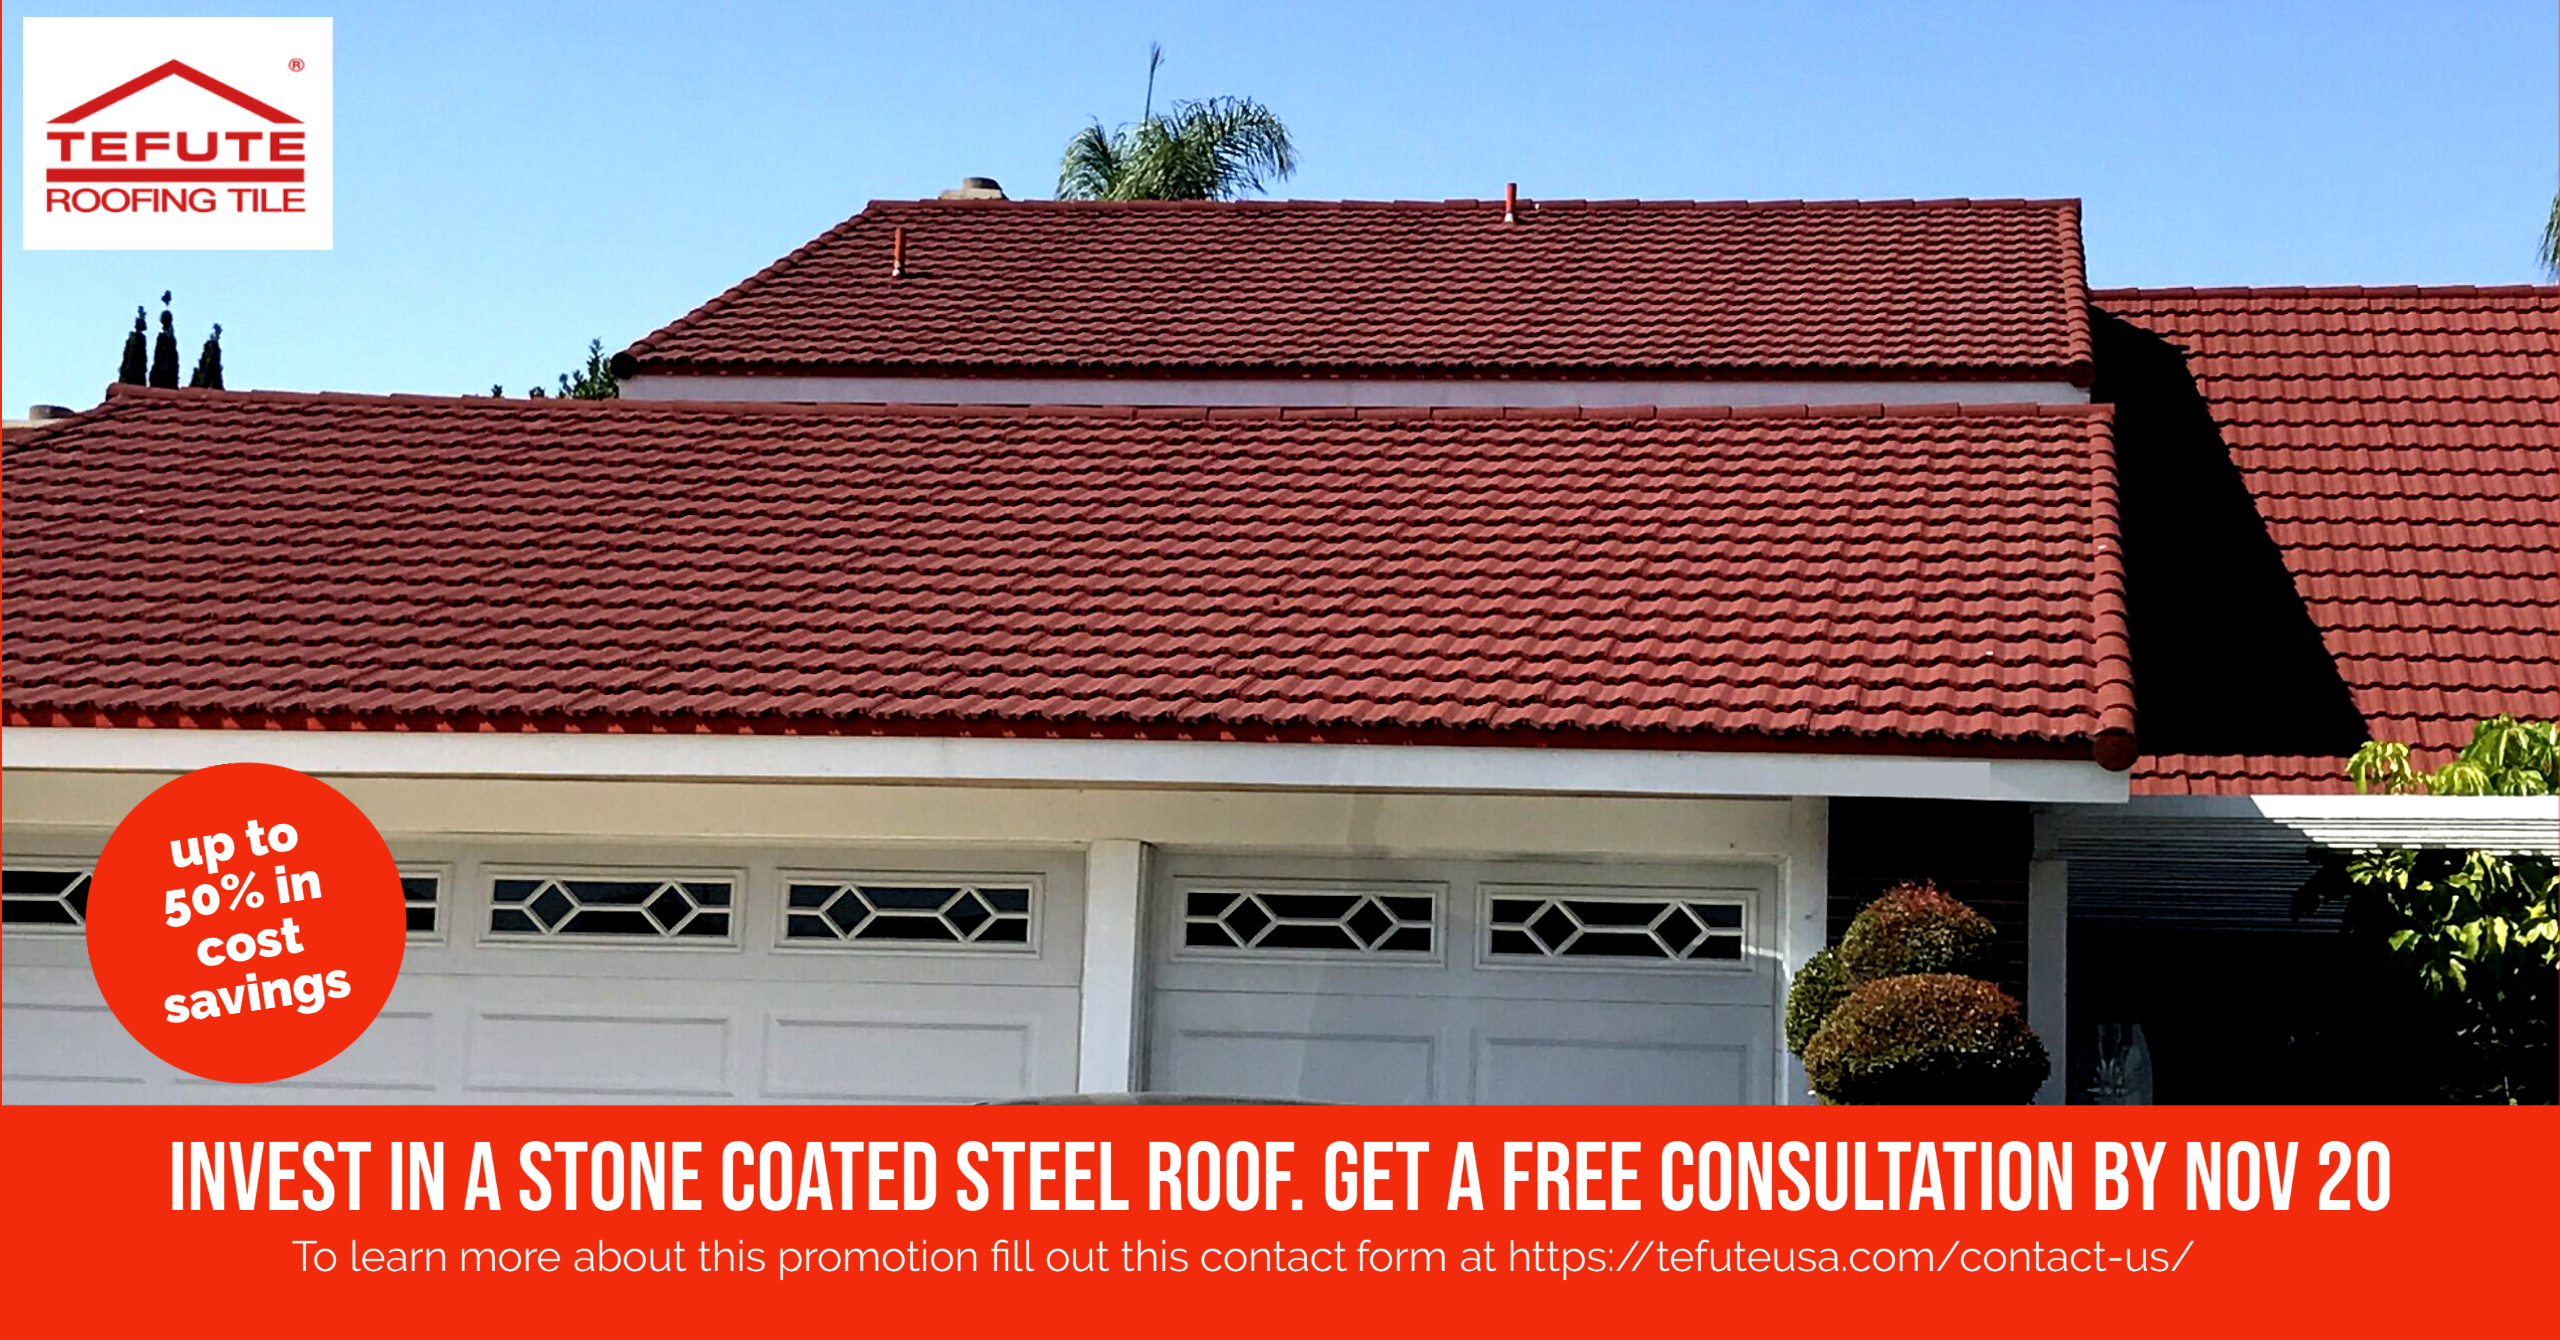 Invest In A Stone Coated Steel Roof And Get A Free Consultation By Nov 20 Roofing Roofingcontractors Floridar In 2020 Roofing Building Materials Roofing Contractors